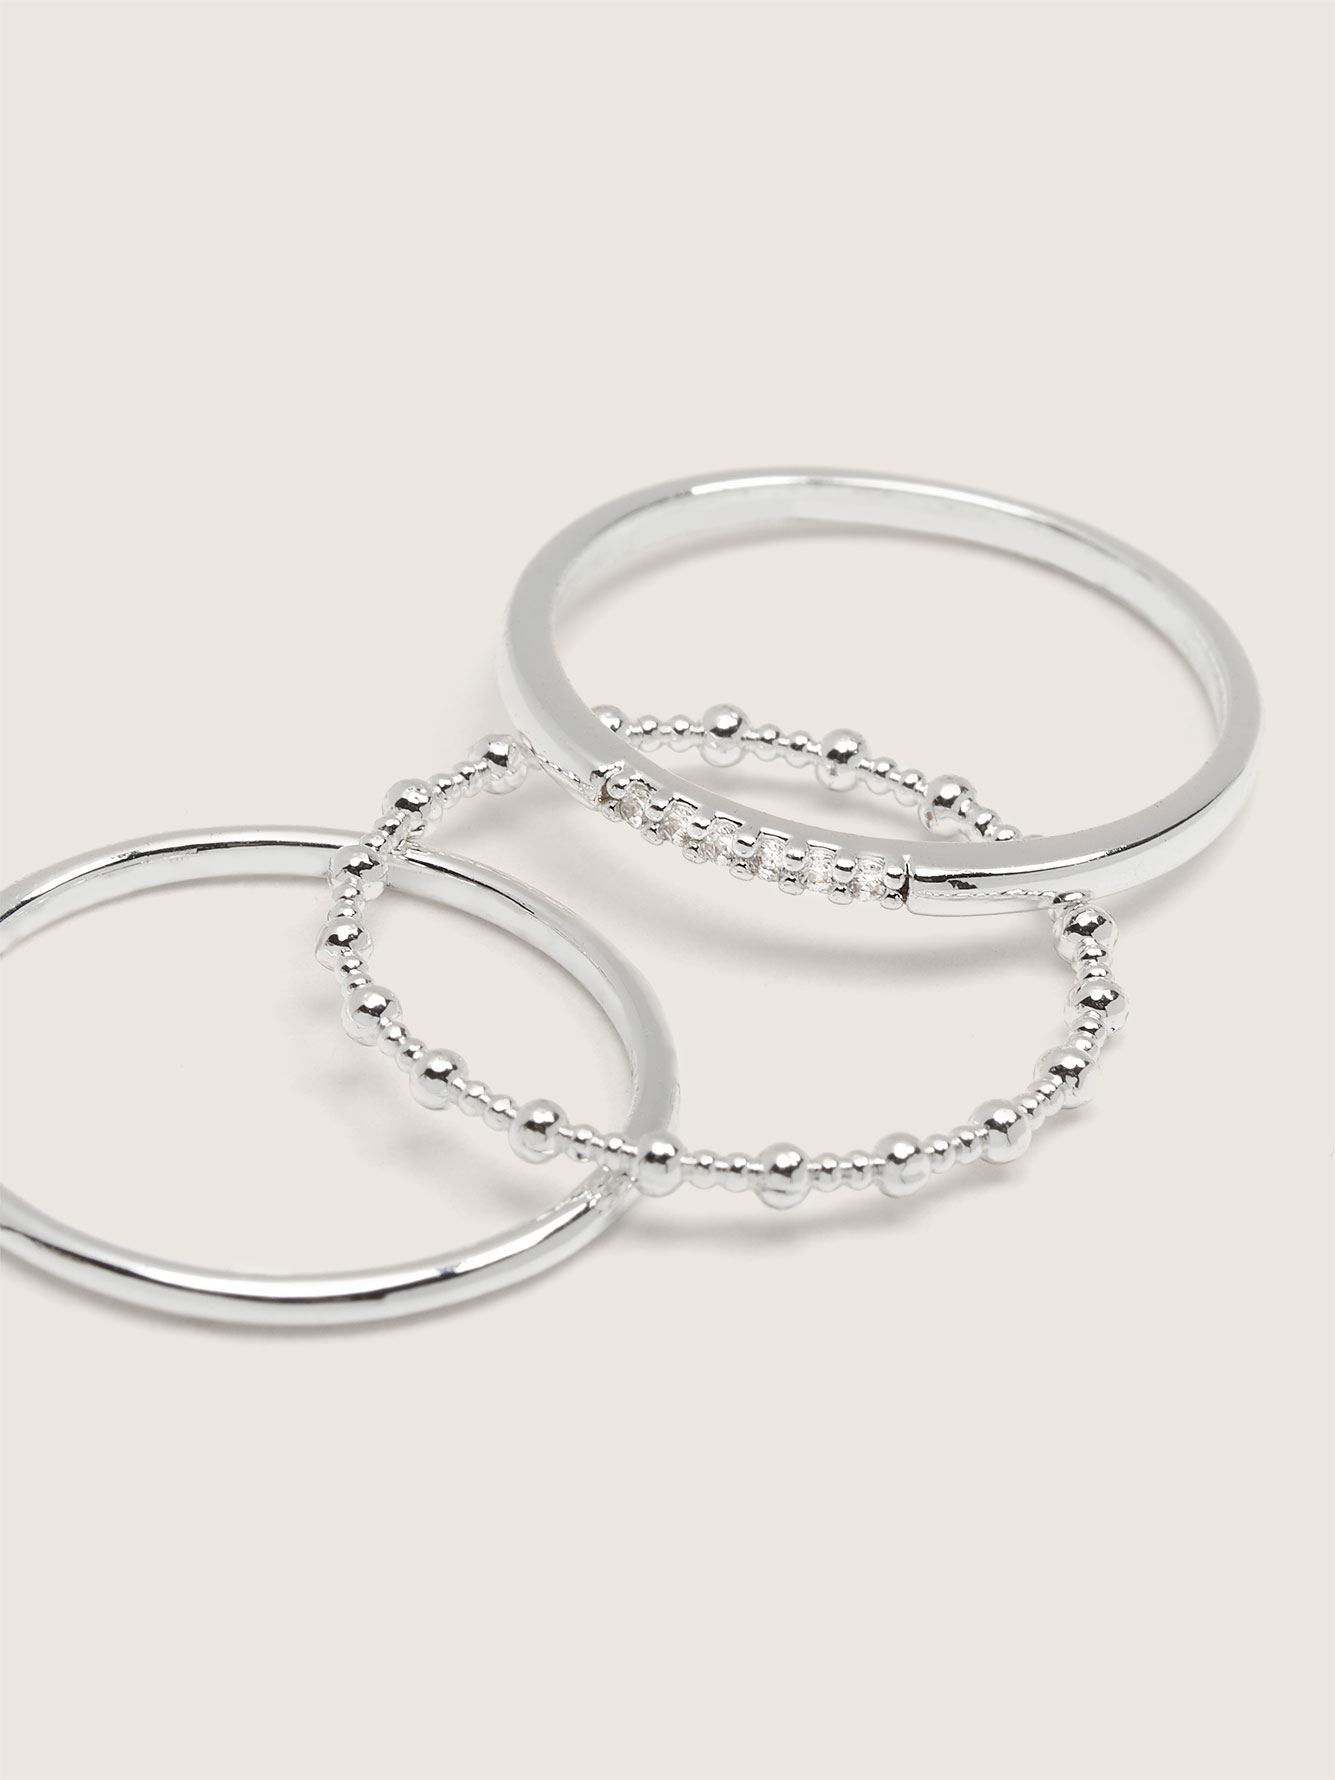 Real Plated Stackable Rings, 3-Pack - Addition Elle